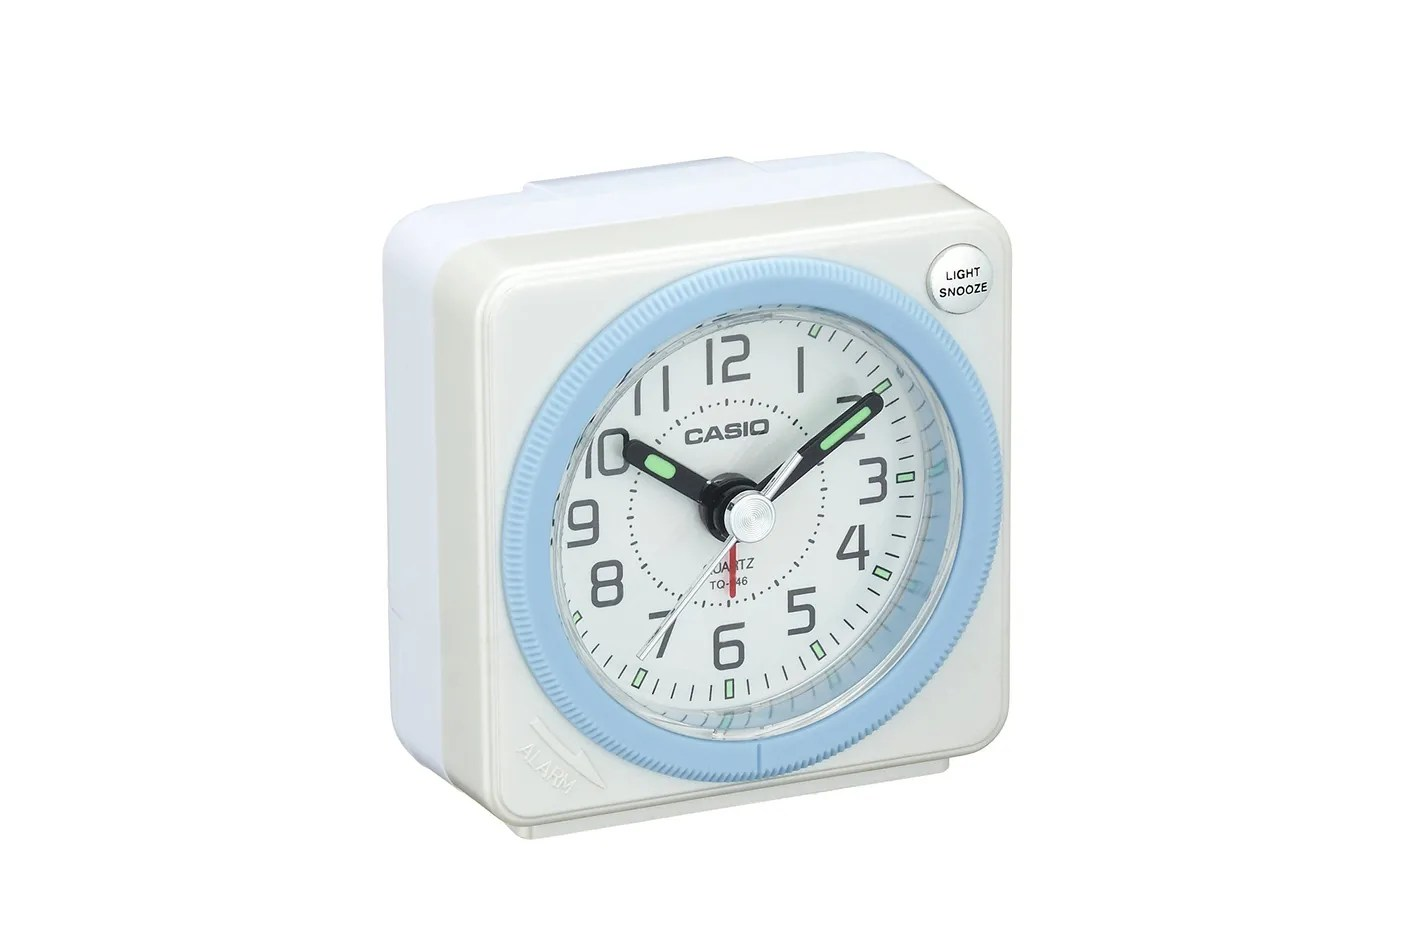 American Made Alarm Clock 14 Best Alarm Clocks On Amazon Reviewed 2019